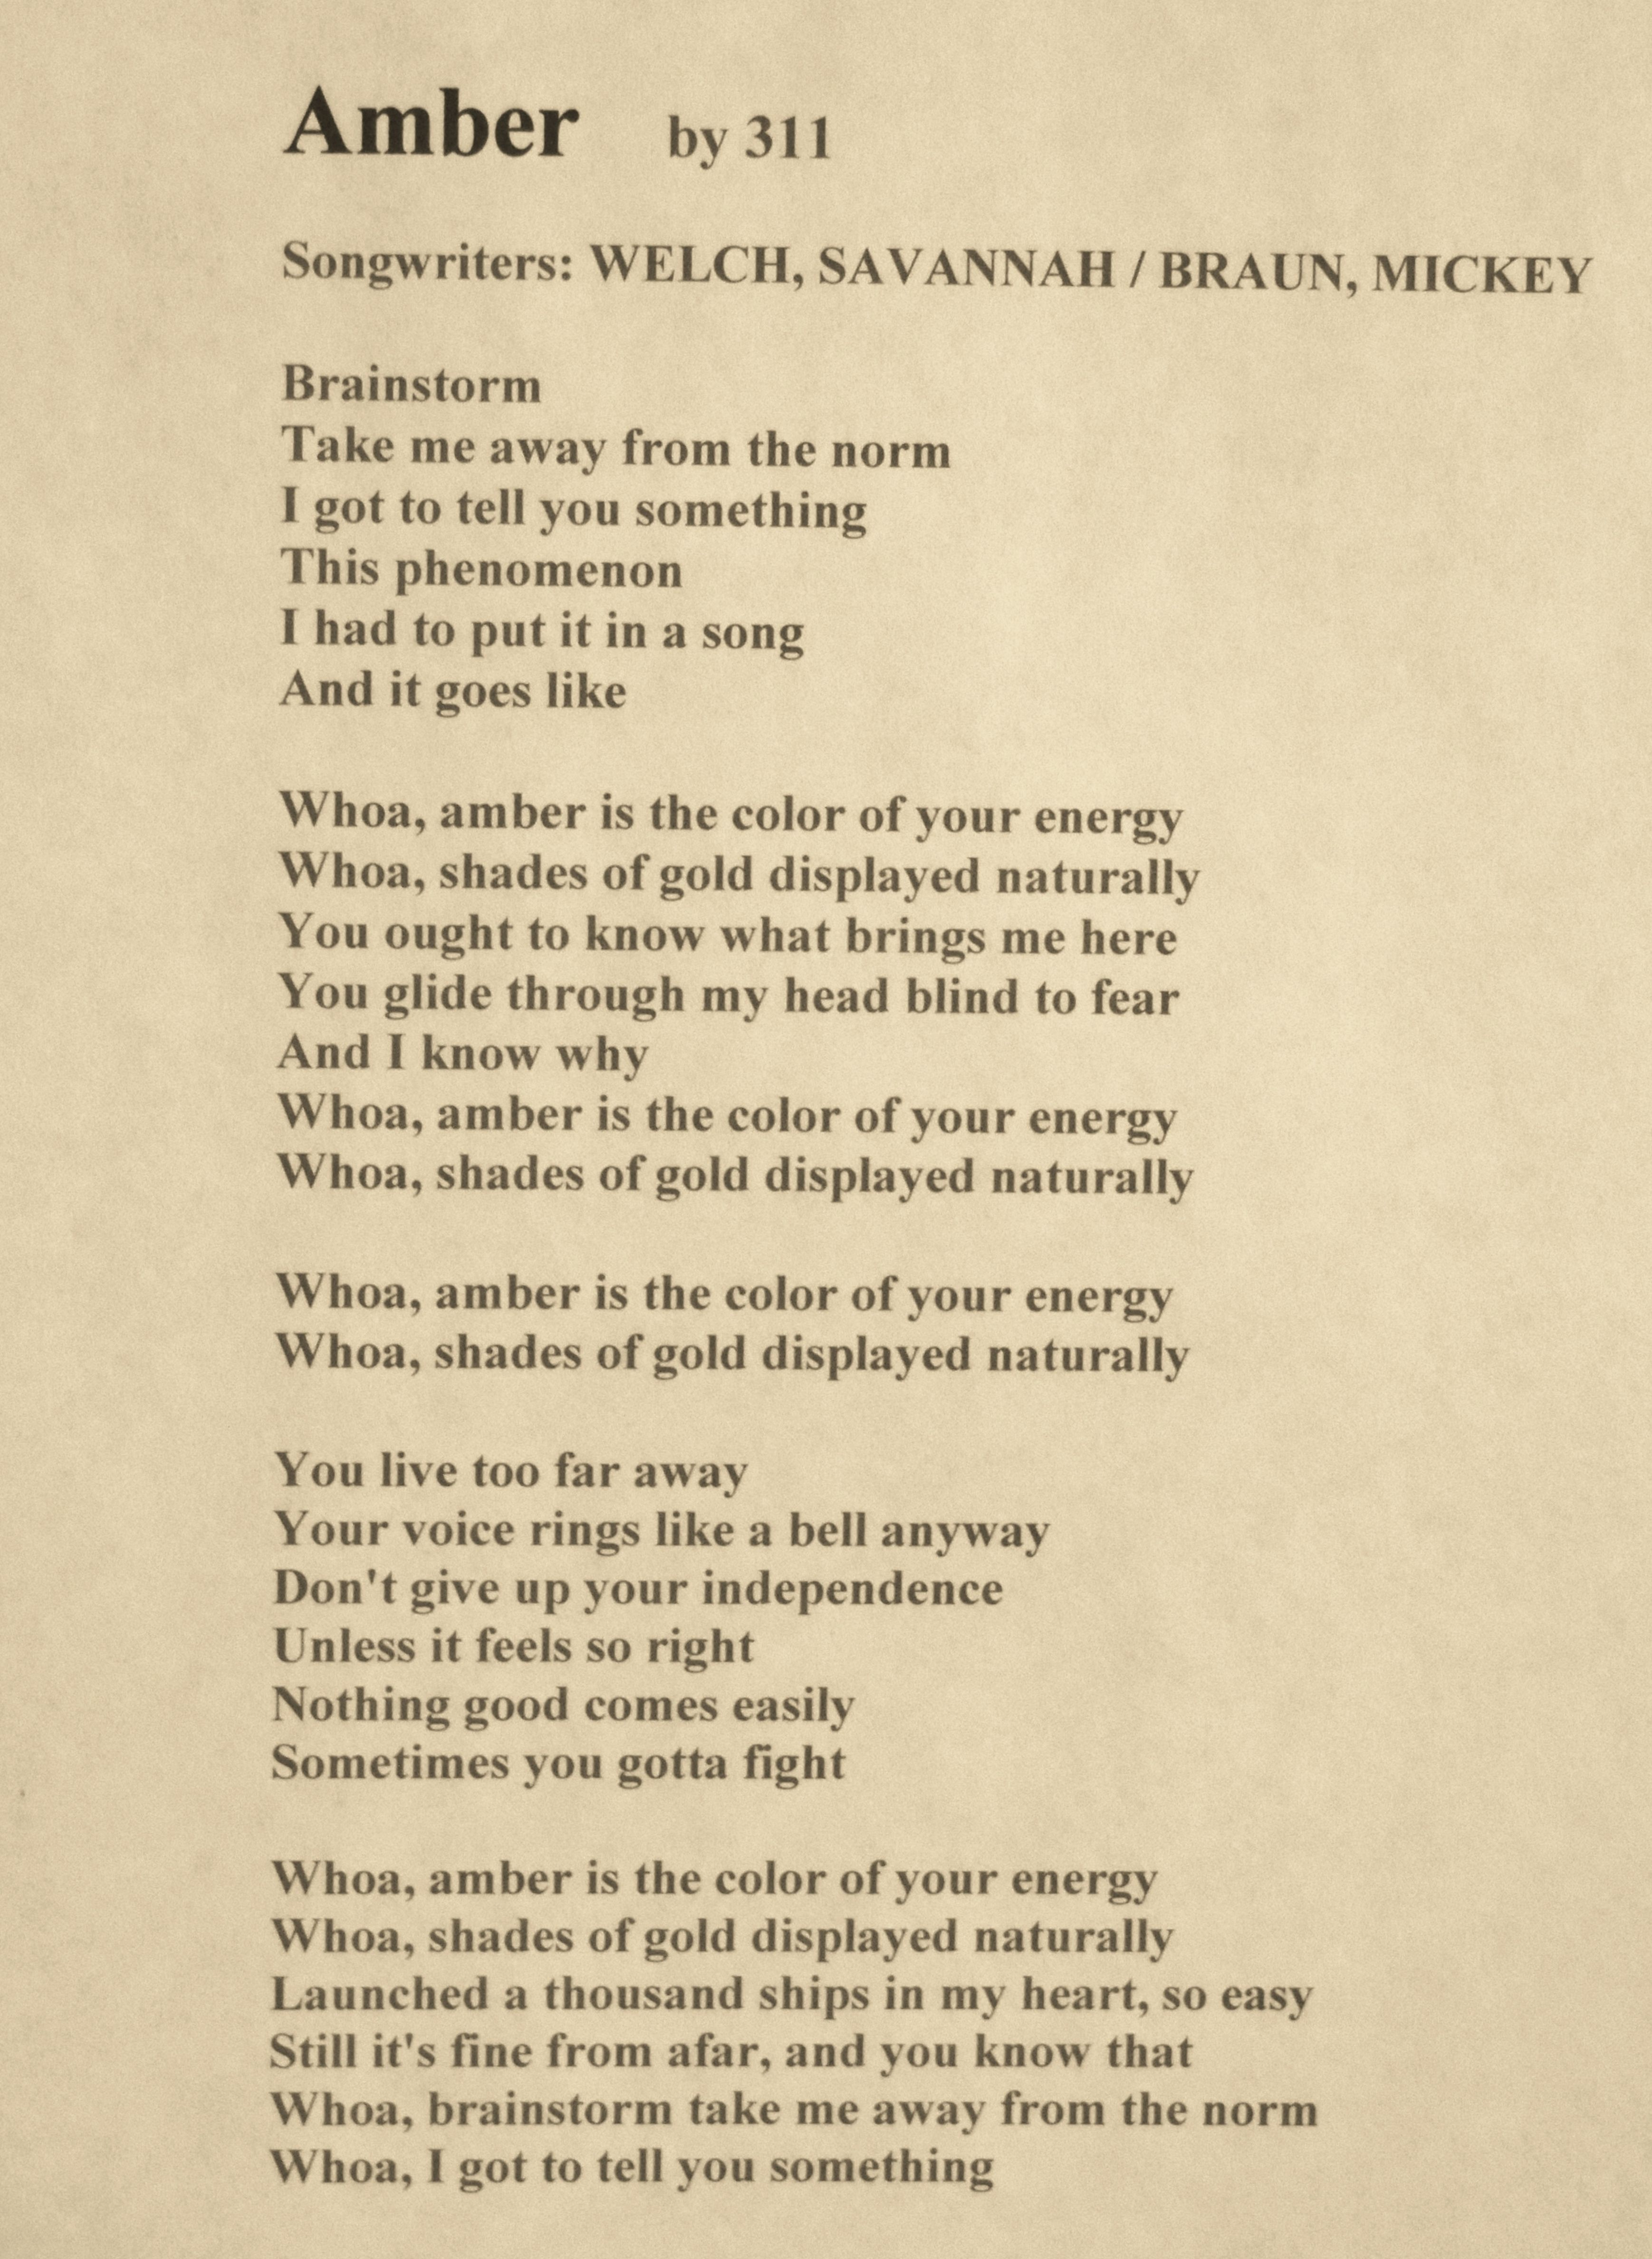 This is the lyrics for the song \